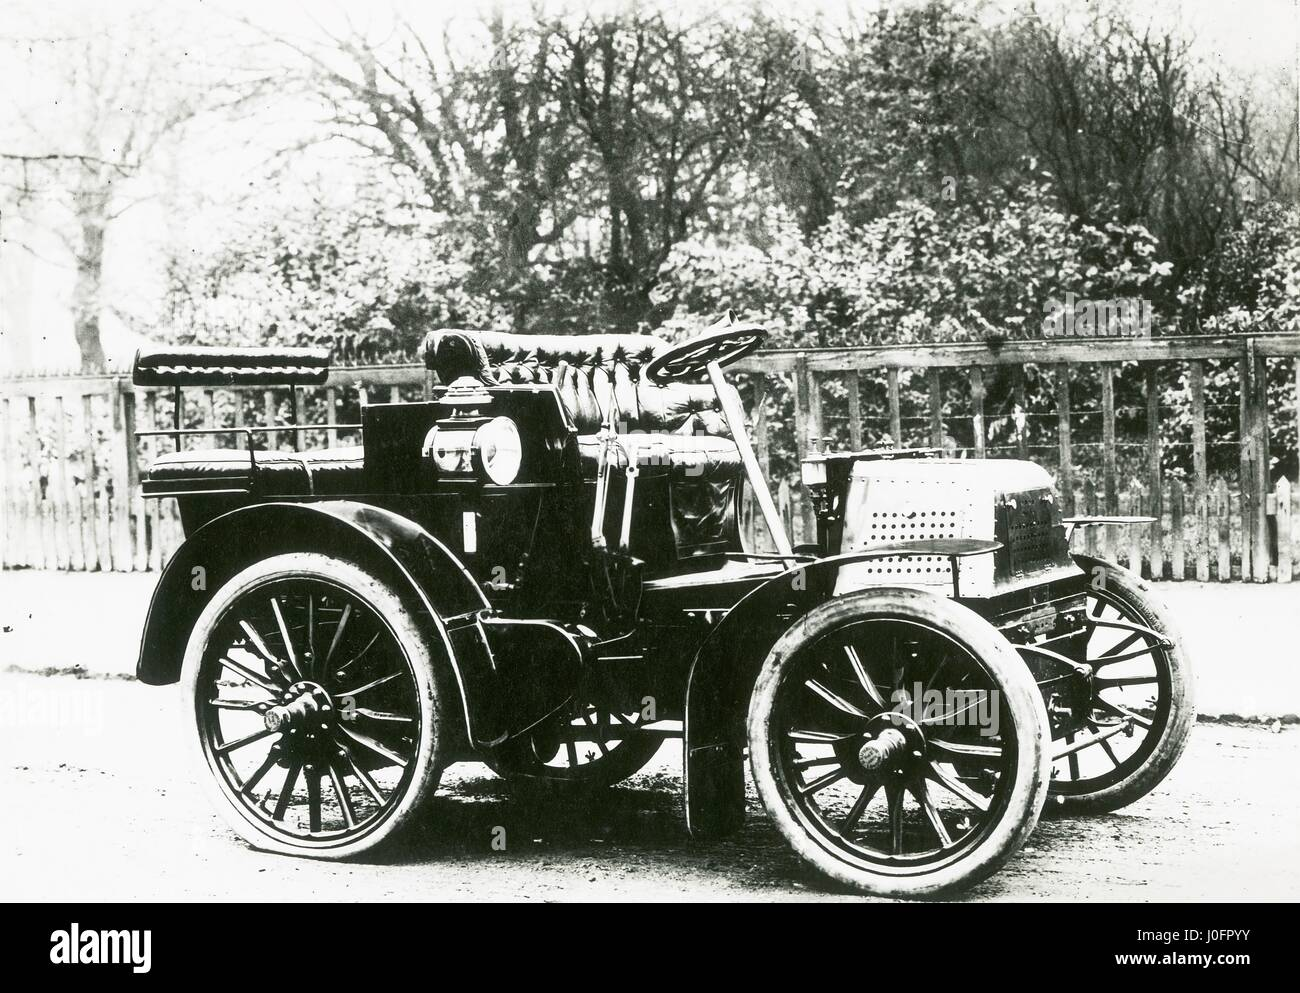 First Napier car, the 8 horse power 2 cylinder engine G20 model of ...